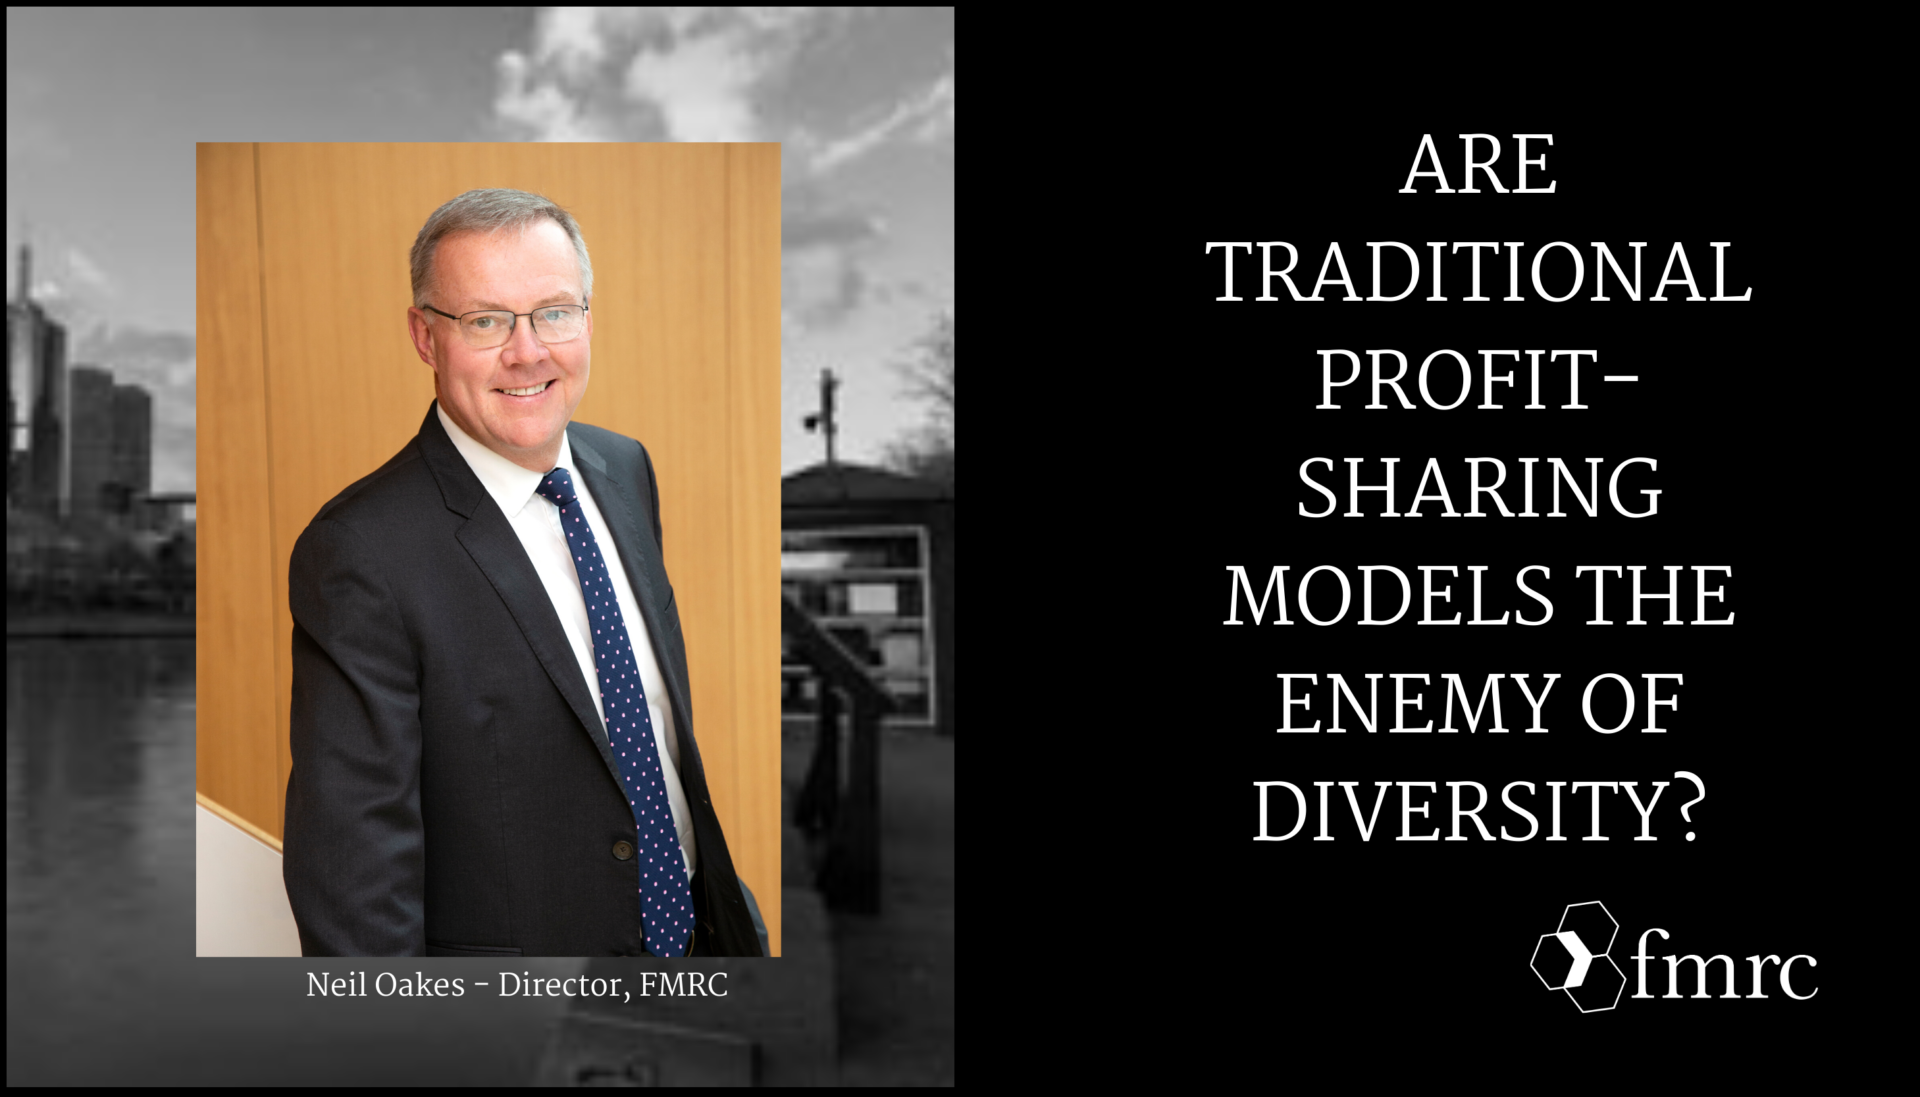 Are Traditional Profit-Sharing Models the Enemy of Diversity?